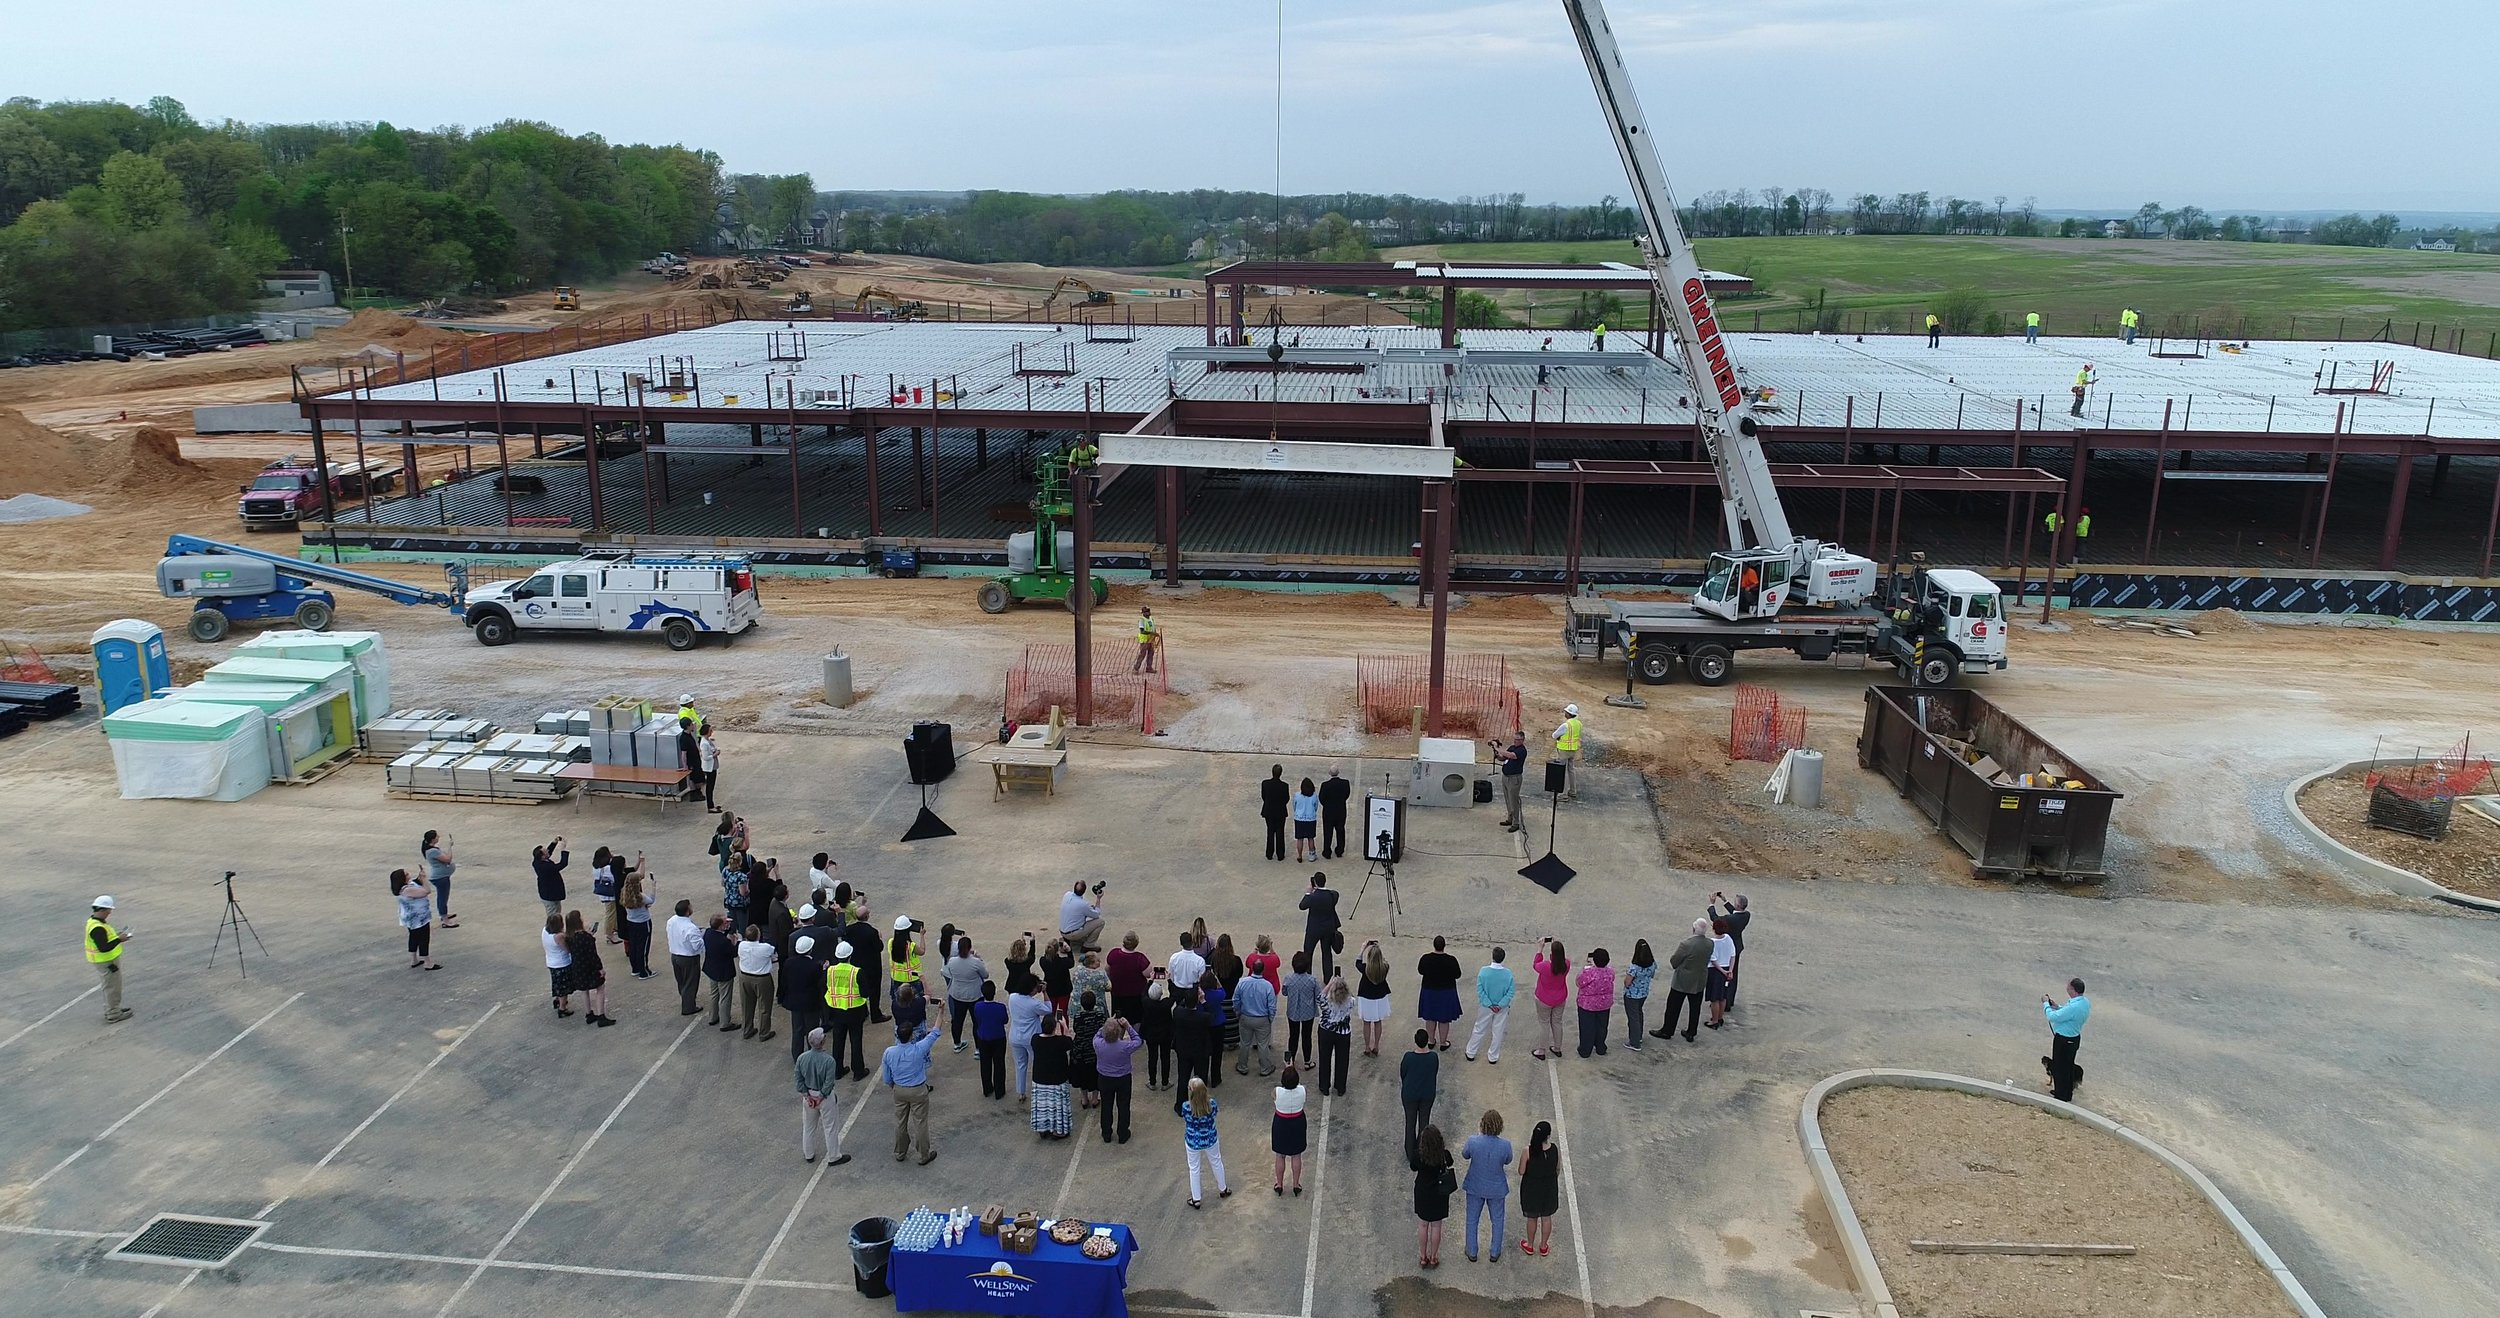 WELLSPAN HEALTH & SURGERY CENTER - Bass erected 650 tons of structural steel per AISC Code of Standard Practice for the new Wellspan Health & Surgery Center in Hanover, PA.